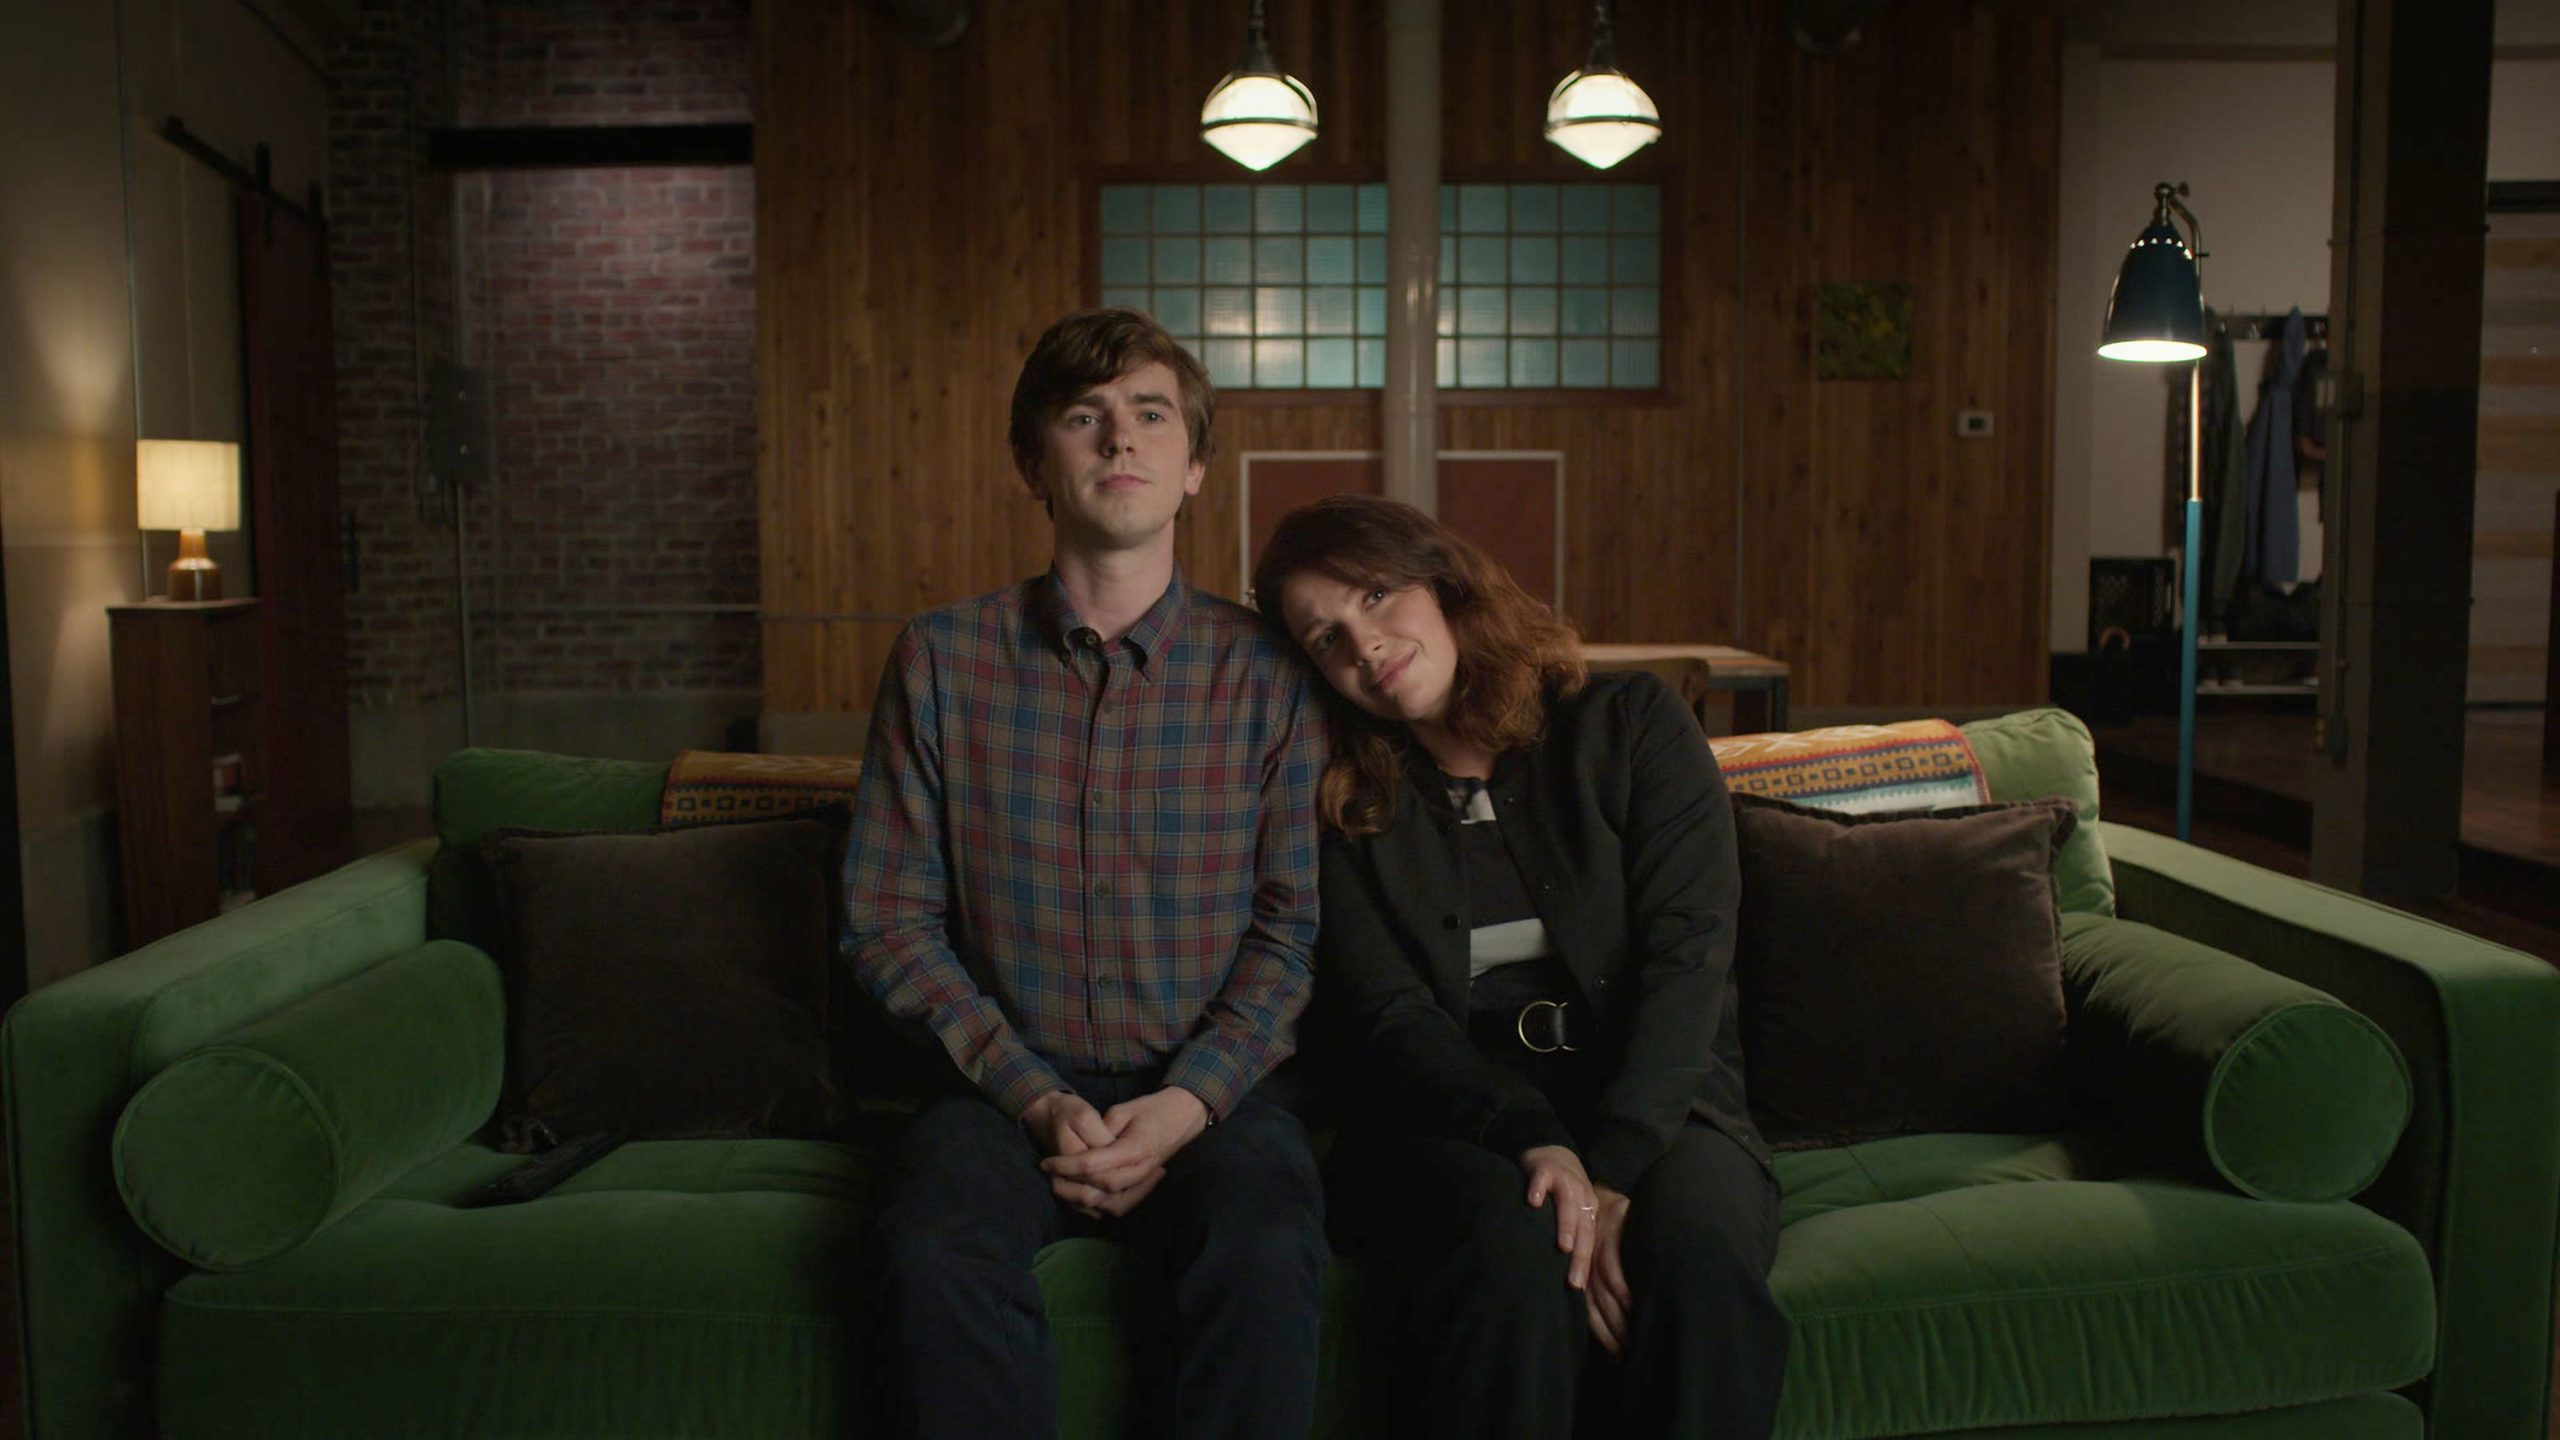 The Good Doctor Comes Back For Season 5 to Spread More Smiles